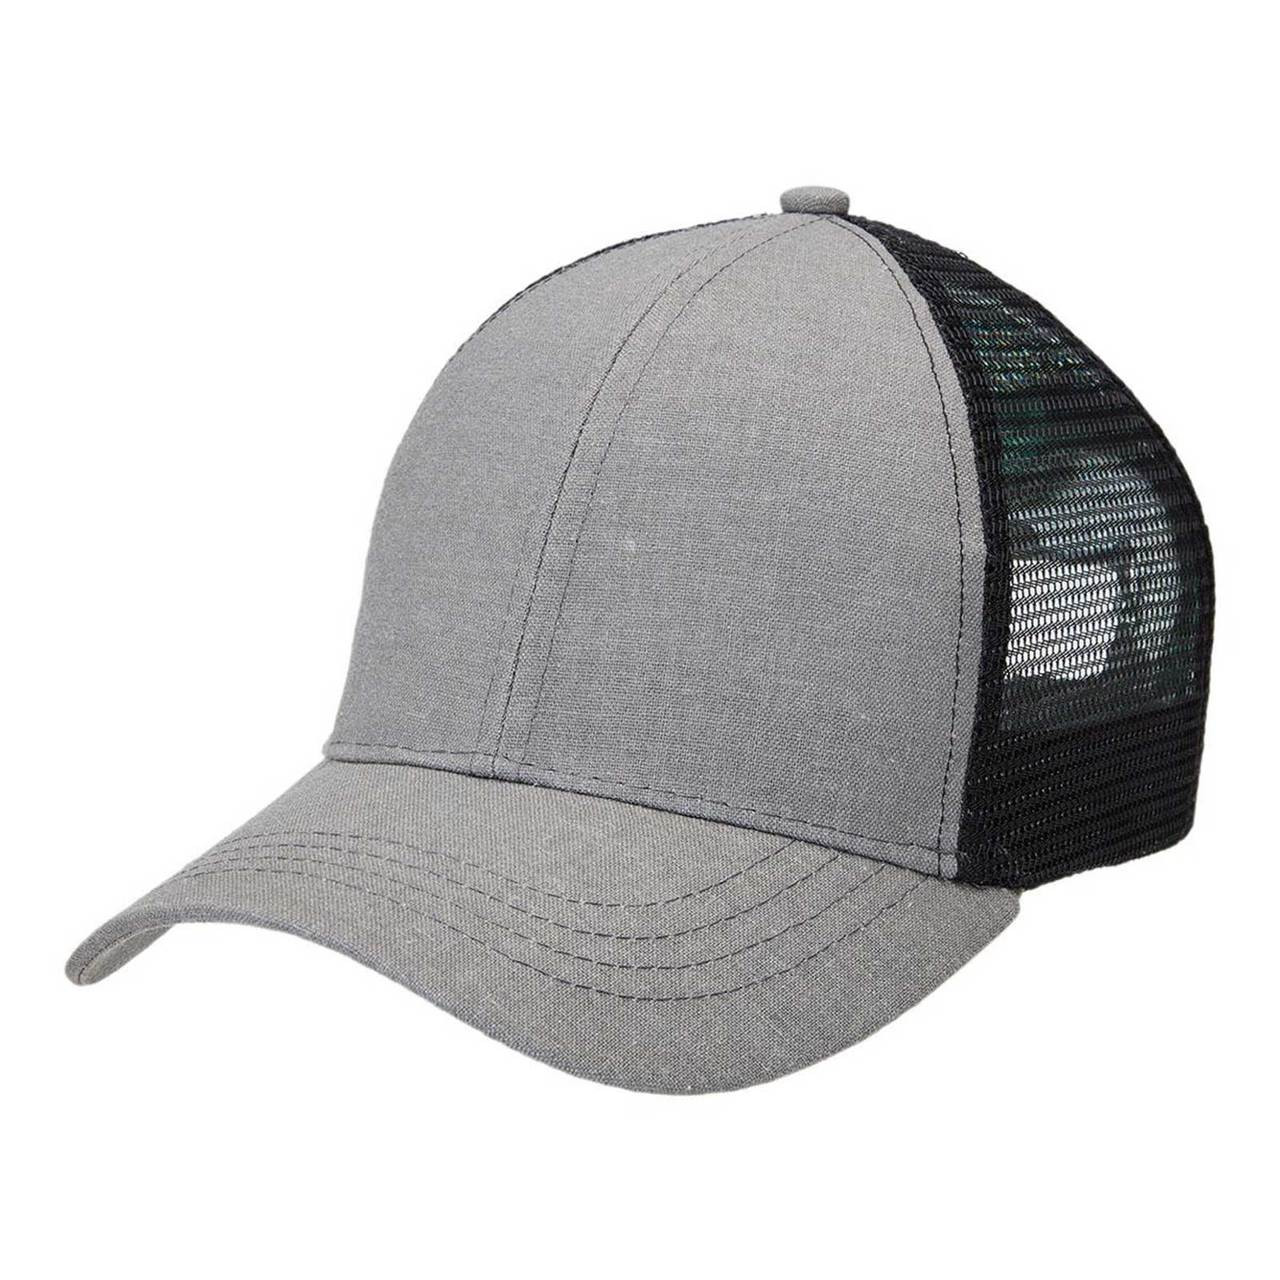 Buy Wholesale Plain Hemp Trucker Caps Online . Bulk Discount Blank ... 744dd67cd255